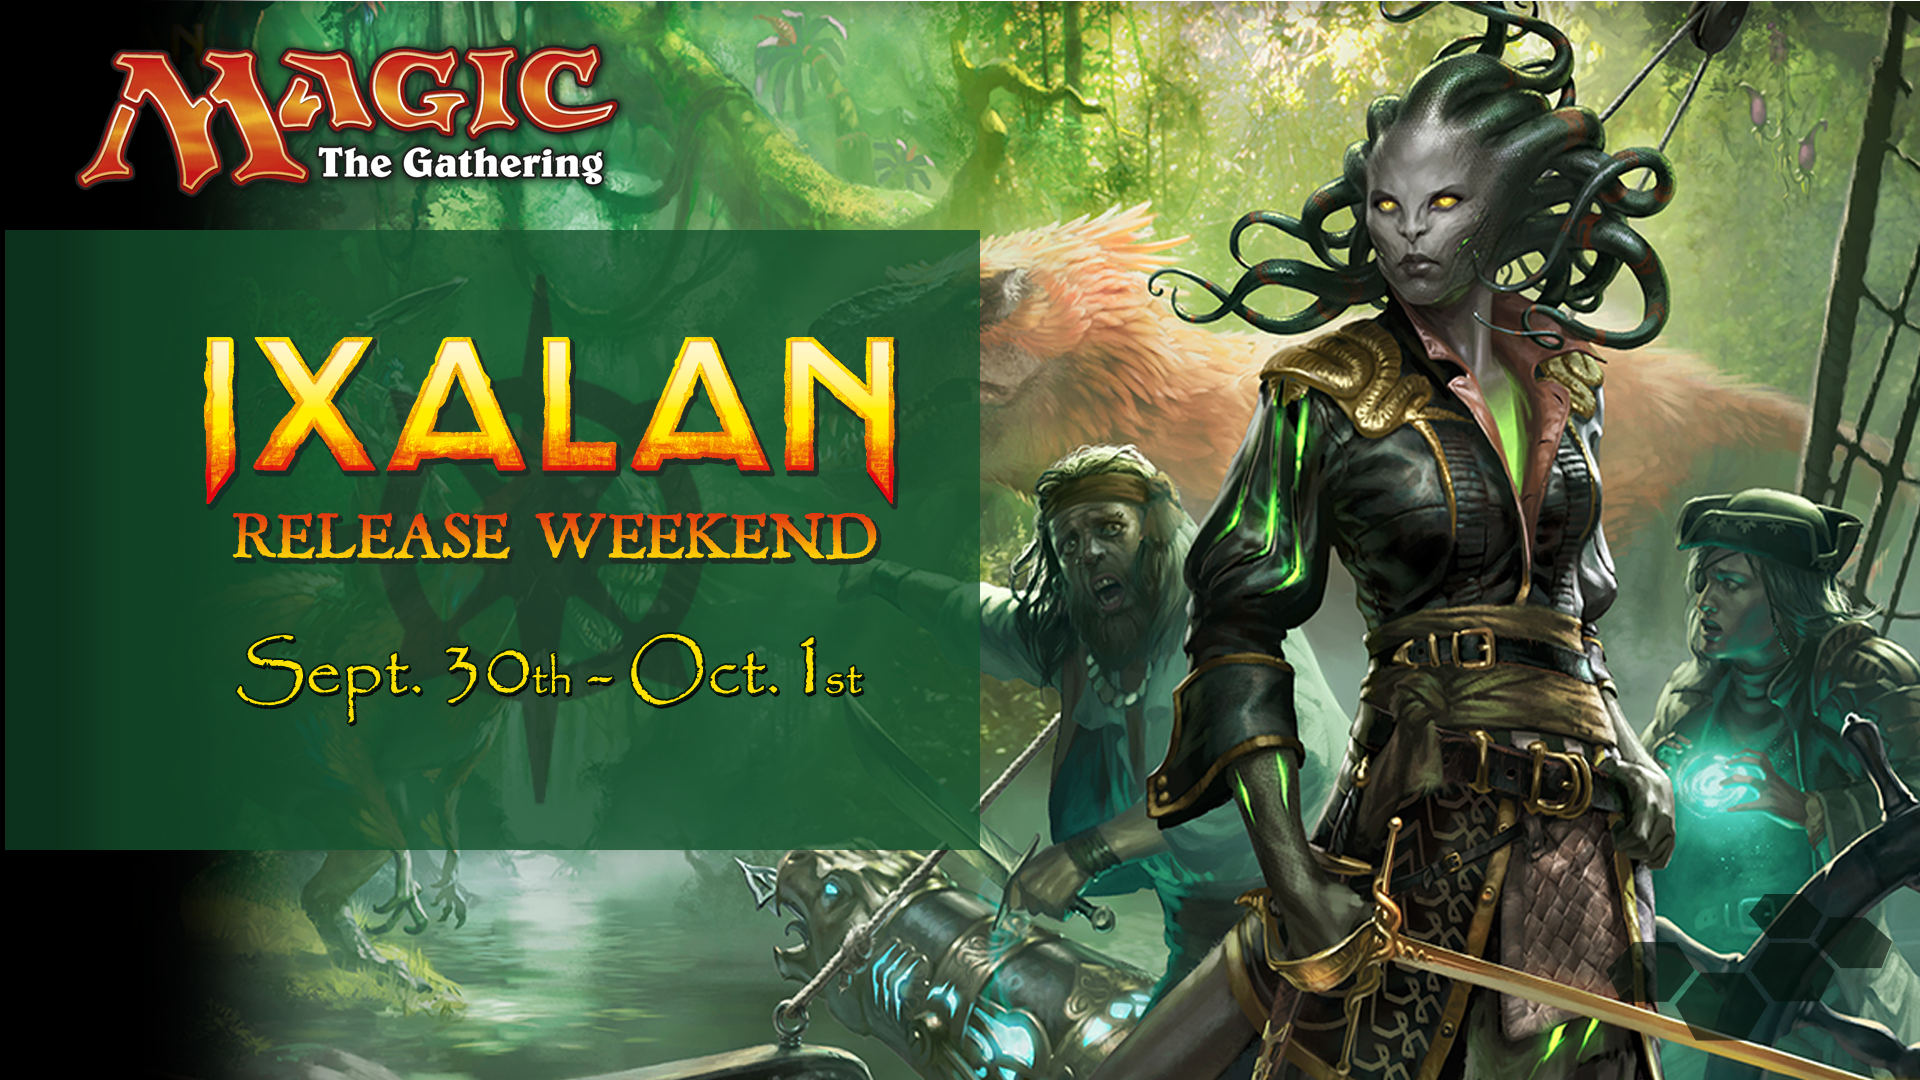 Ixalan Release Weekend Event Image.png